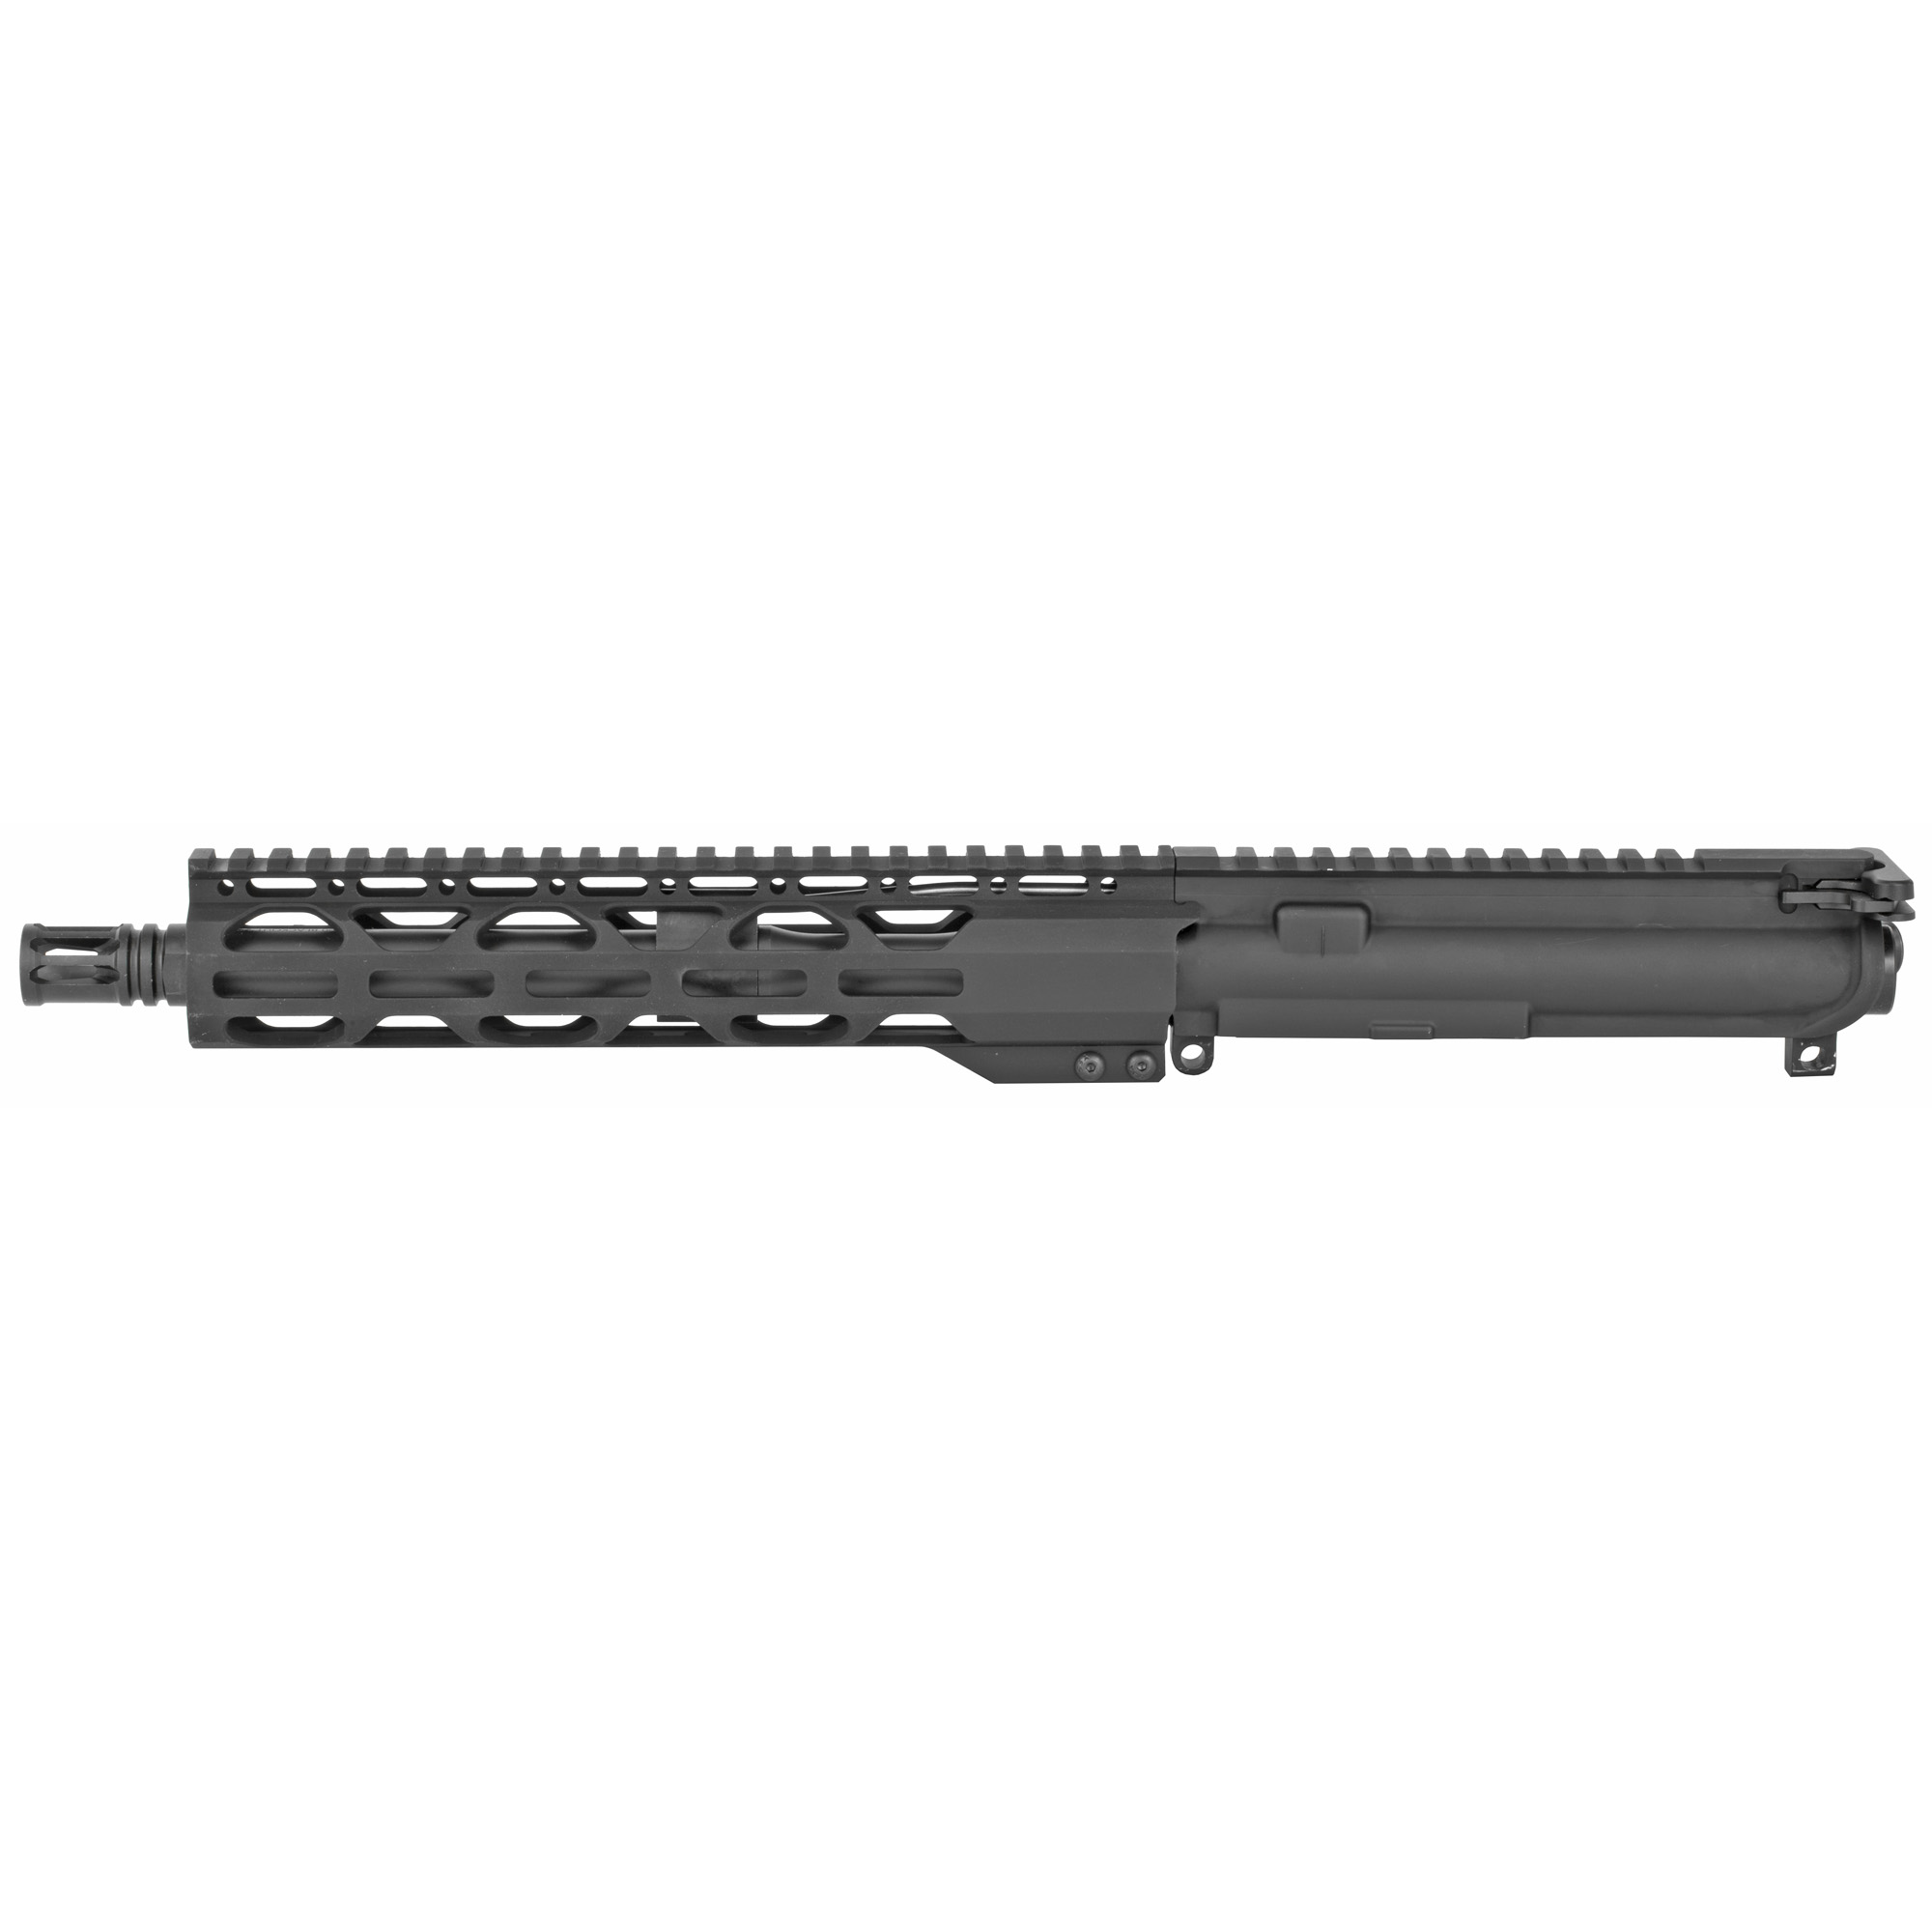 """The Radical Firearms 10.5"""" HBAR profile 300BLK is a complete MIL-STD upper ready to drop on any MIL-STD lower Receiver. Perfect for the novice or advanced shooter wanting to finish out that build and hit the range. Built with the 10"""" RPR free float rail system for increased accuracy and keeping your hands cool. No matter what your style of shooting is"""" Radical Firearms has you covered."""